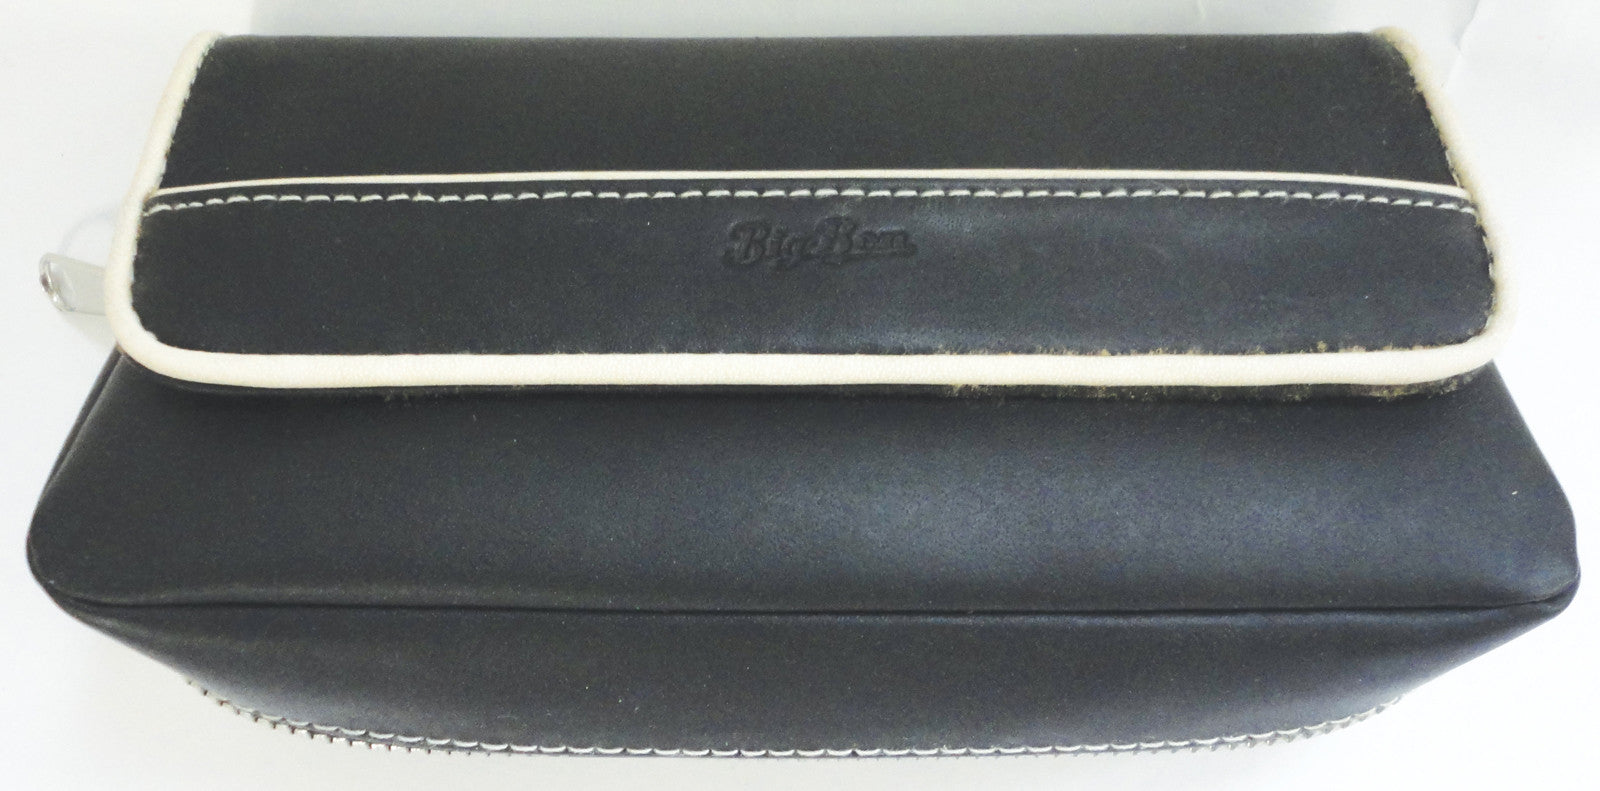 BigBen genuine leather pouch for 2 pipes & tobacco combination 743.221.221